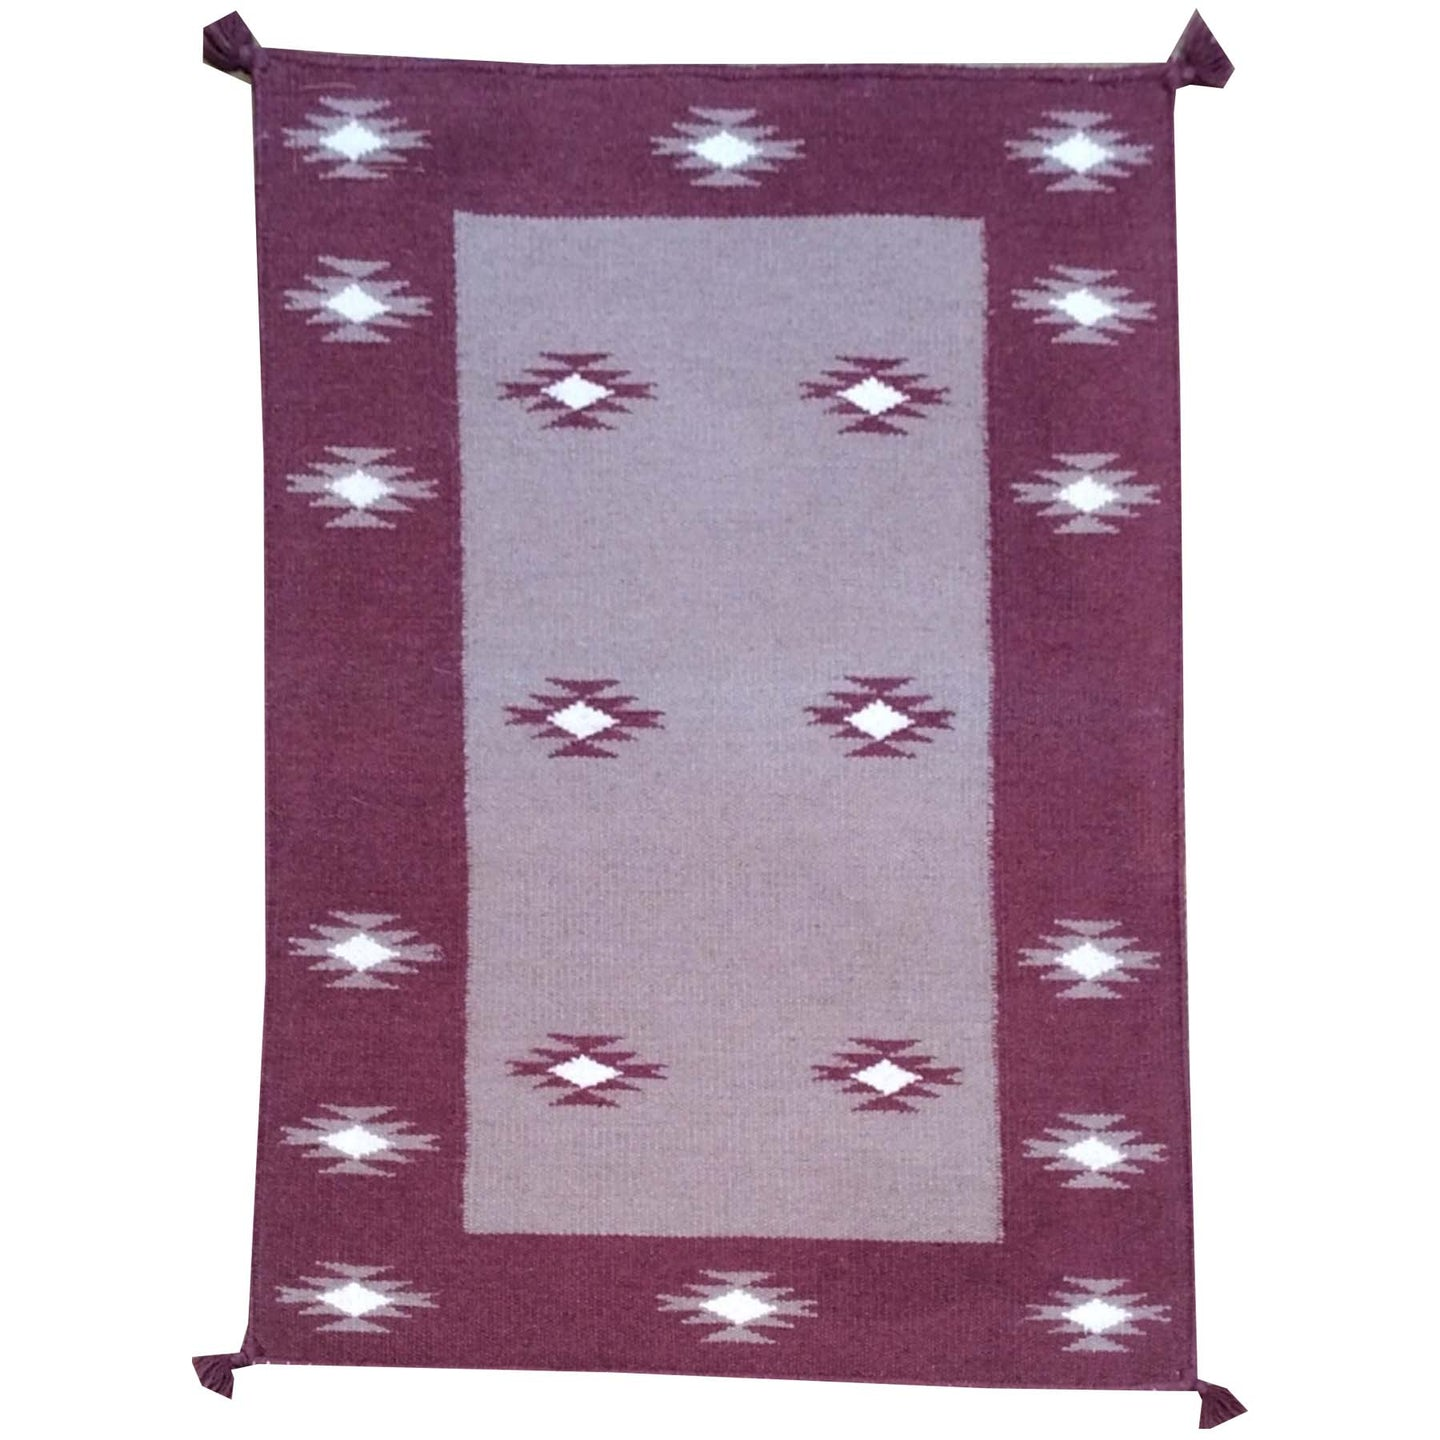 Hand-Woven Fine Southwestern Design Handmade Wool Rug (Size 2.1 X 3.1) Brrsf-1728